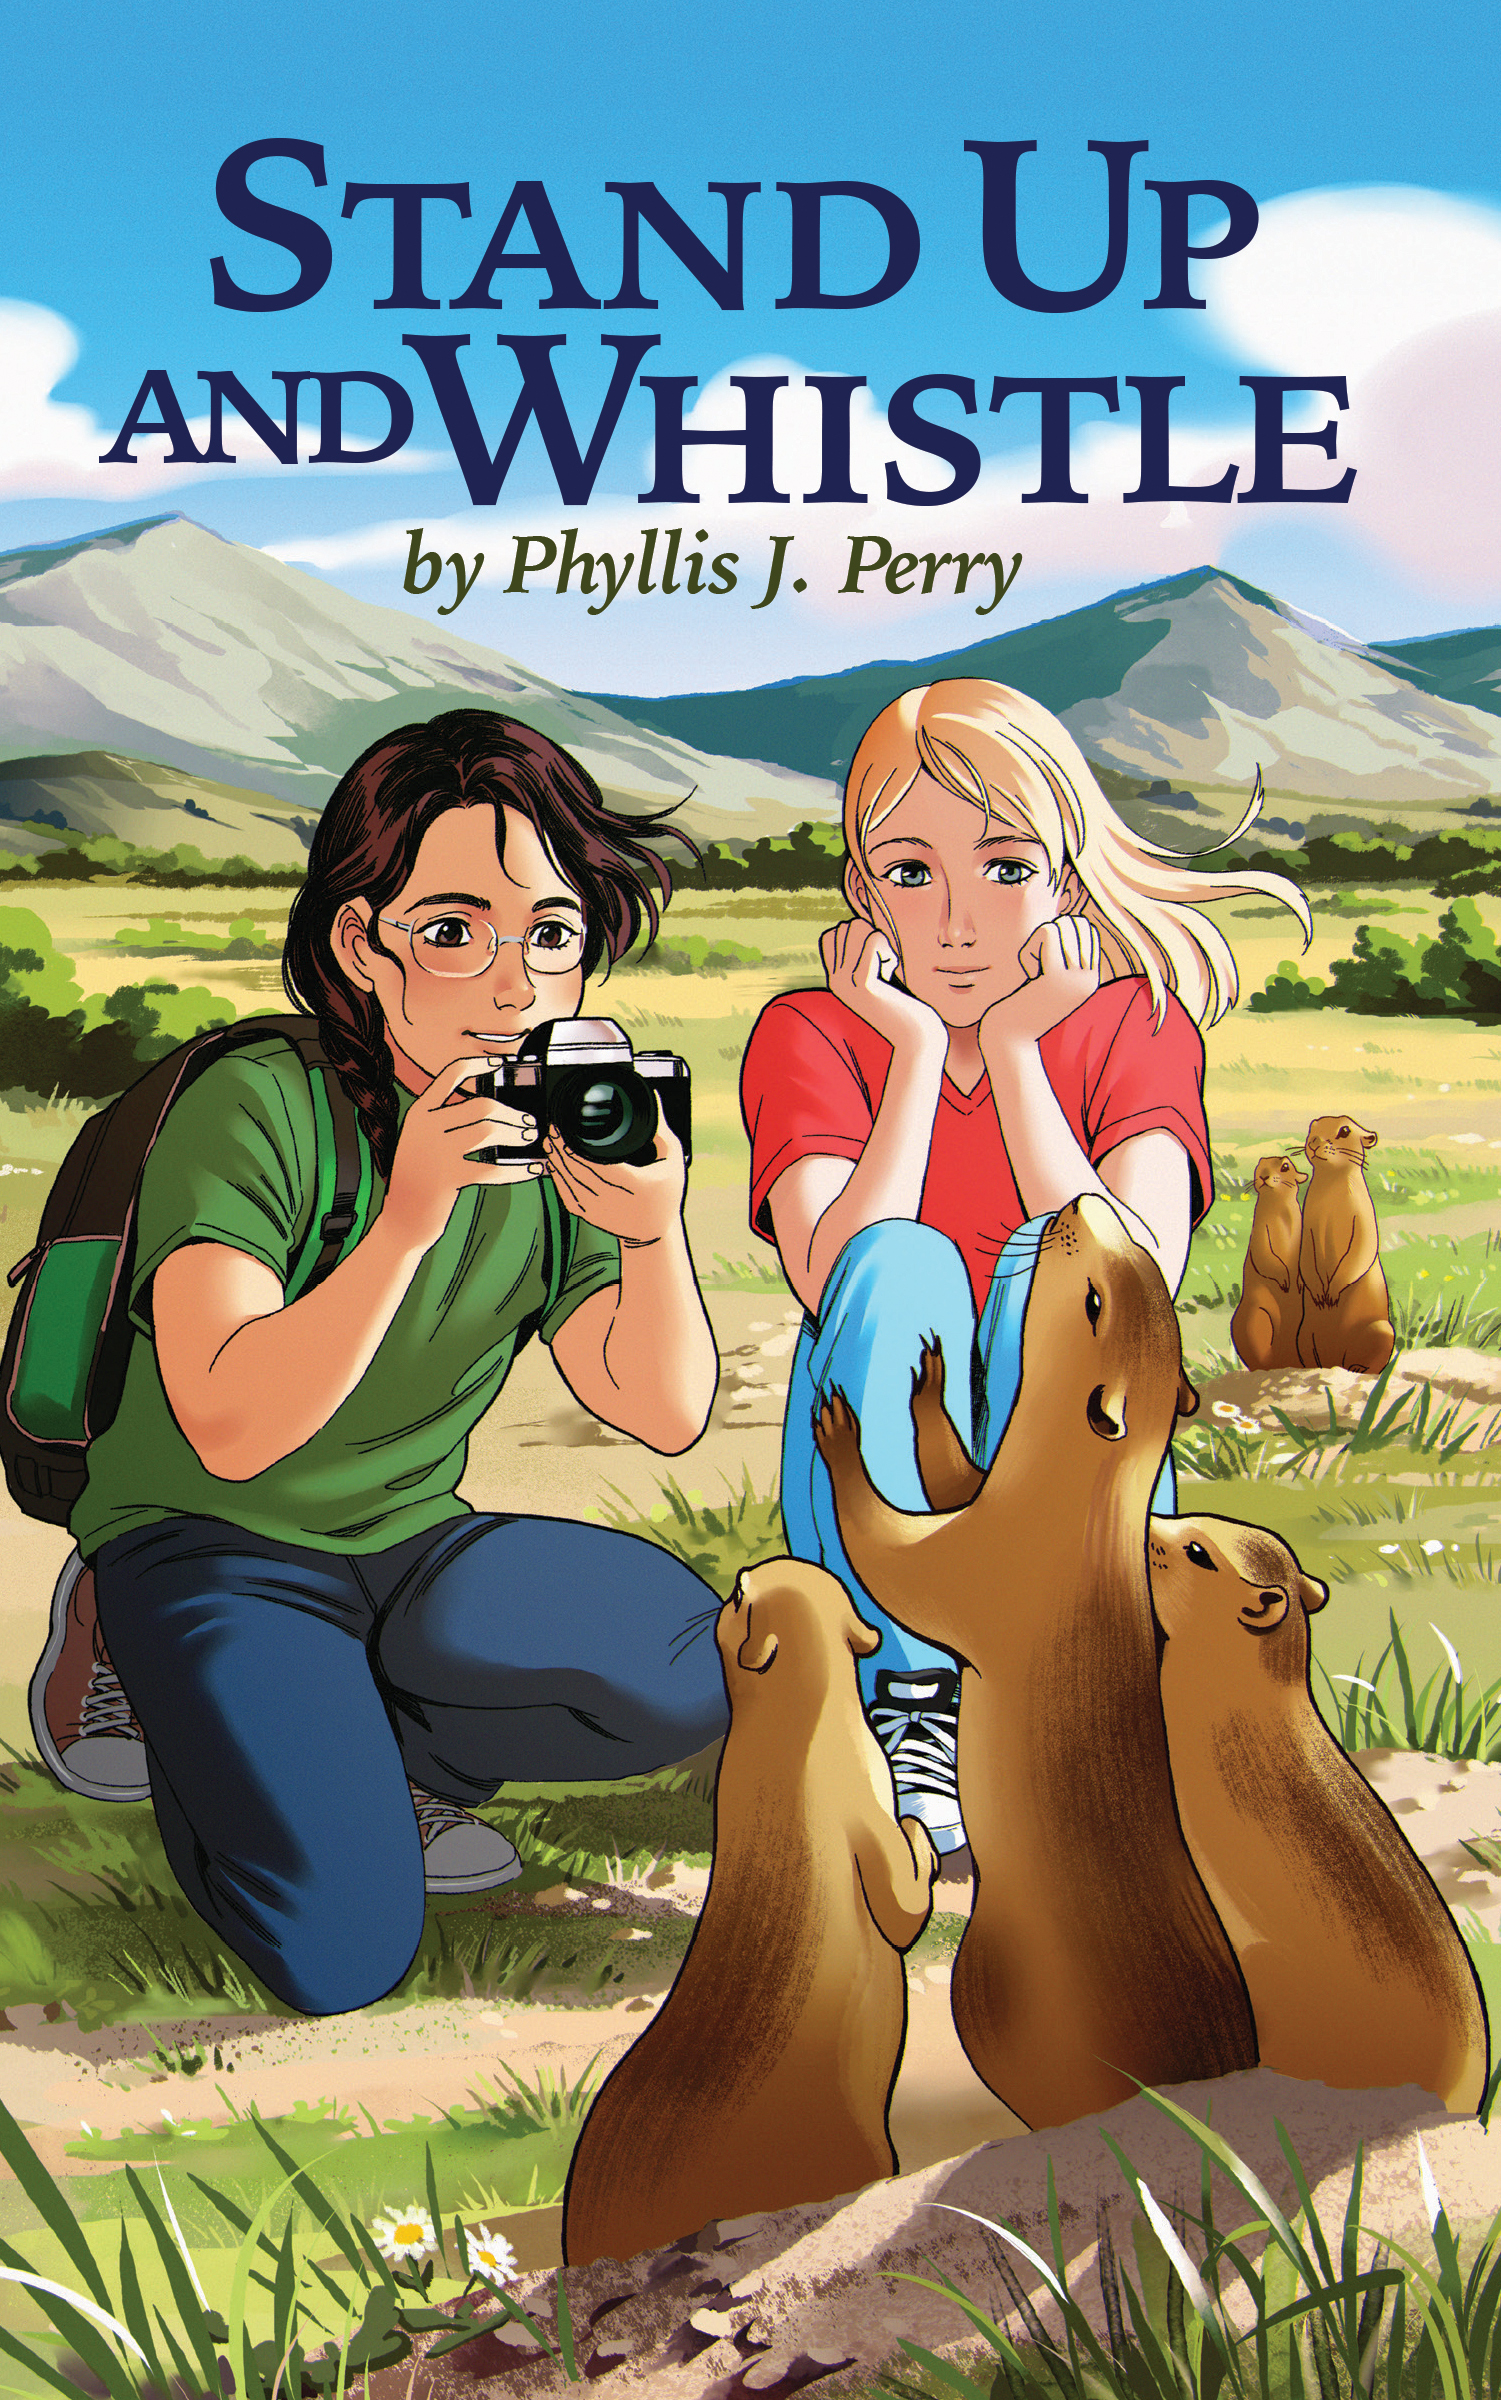 Stand Up and Whistle by Phyllis J. Perry